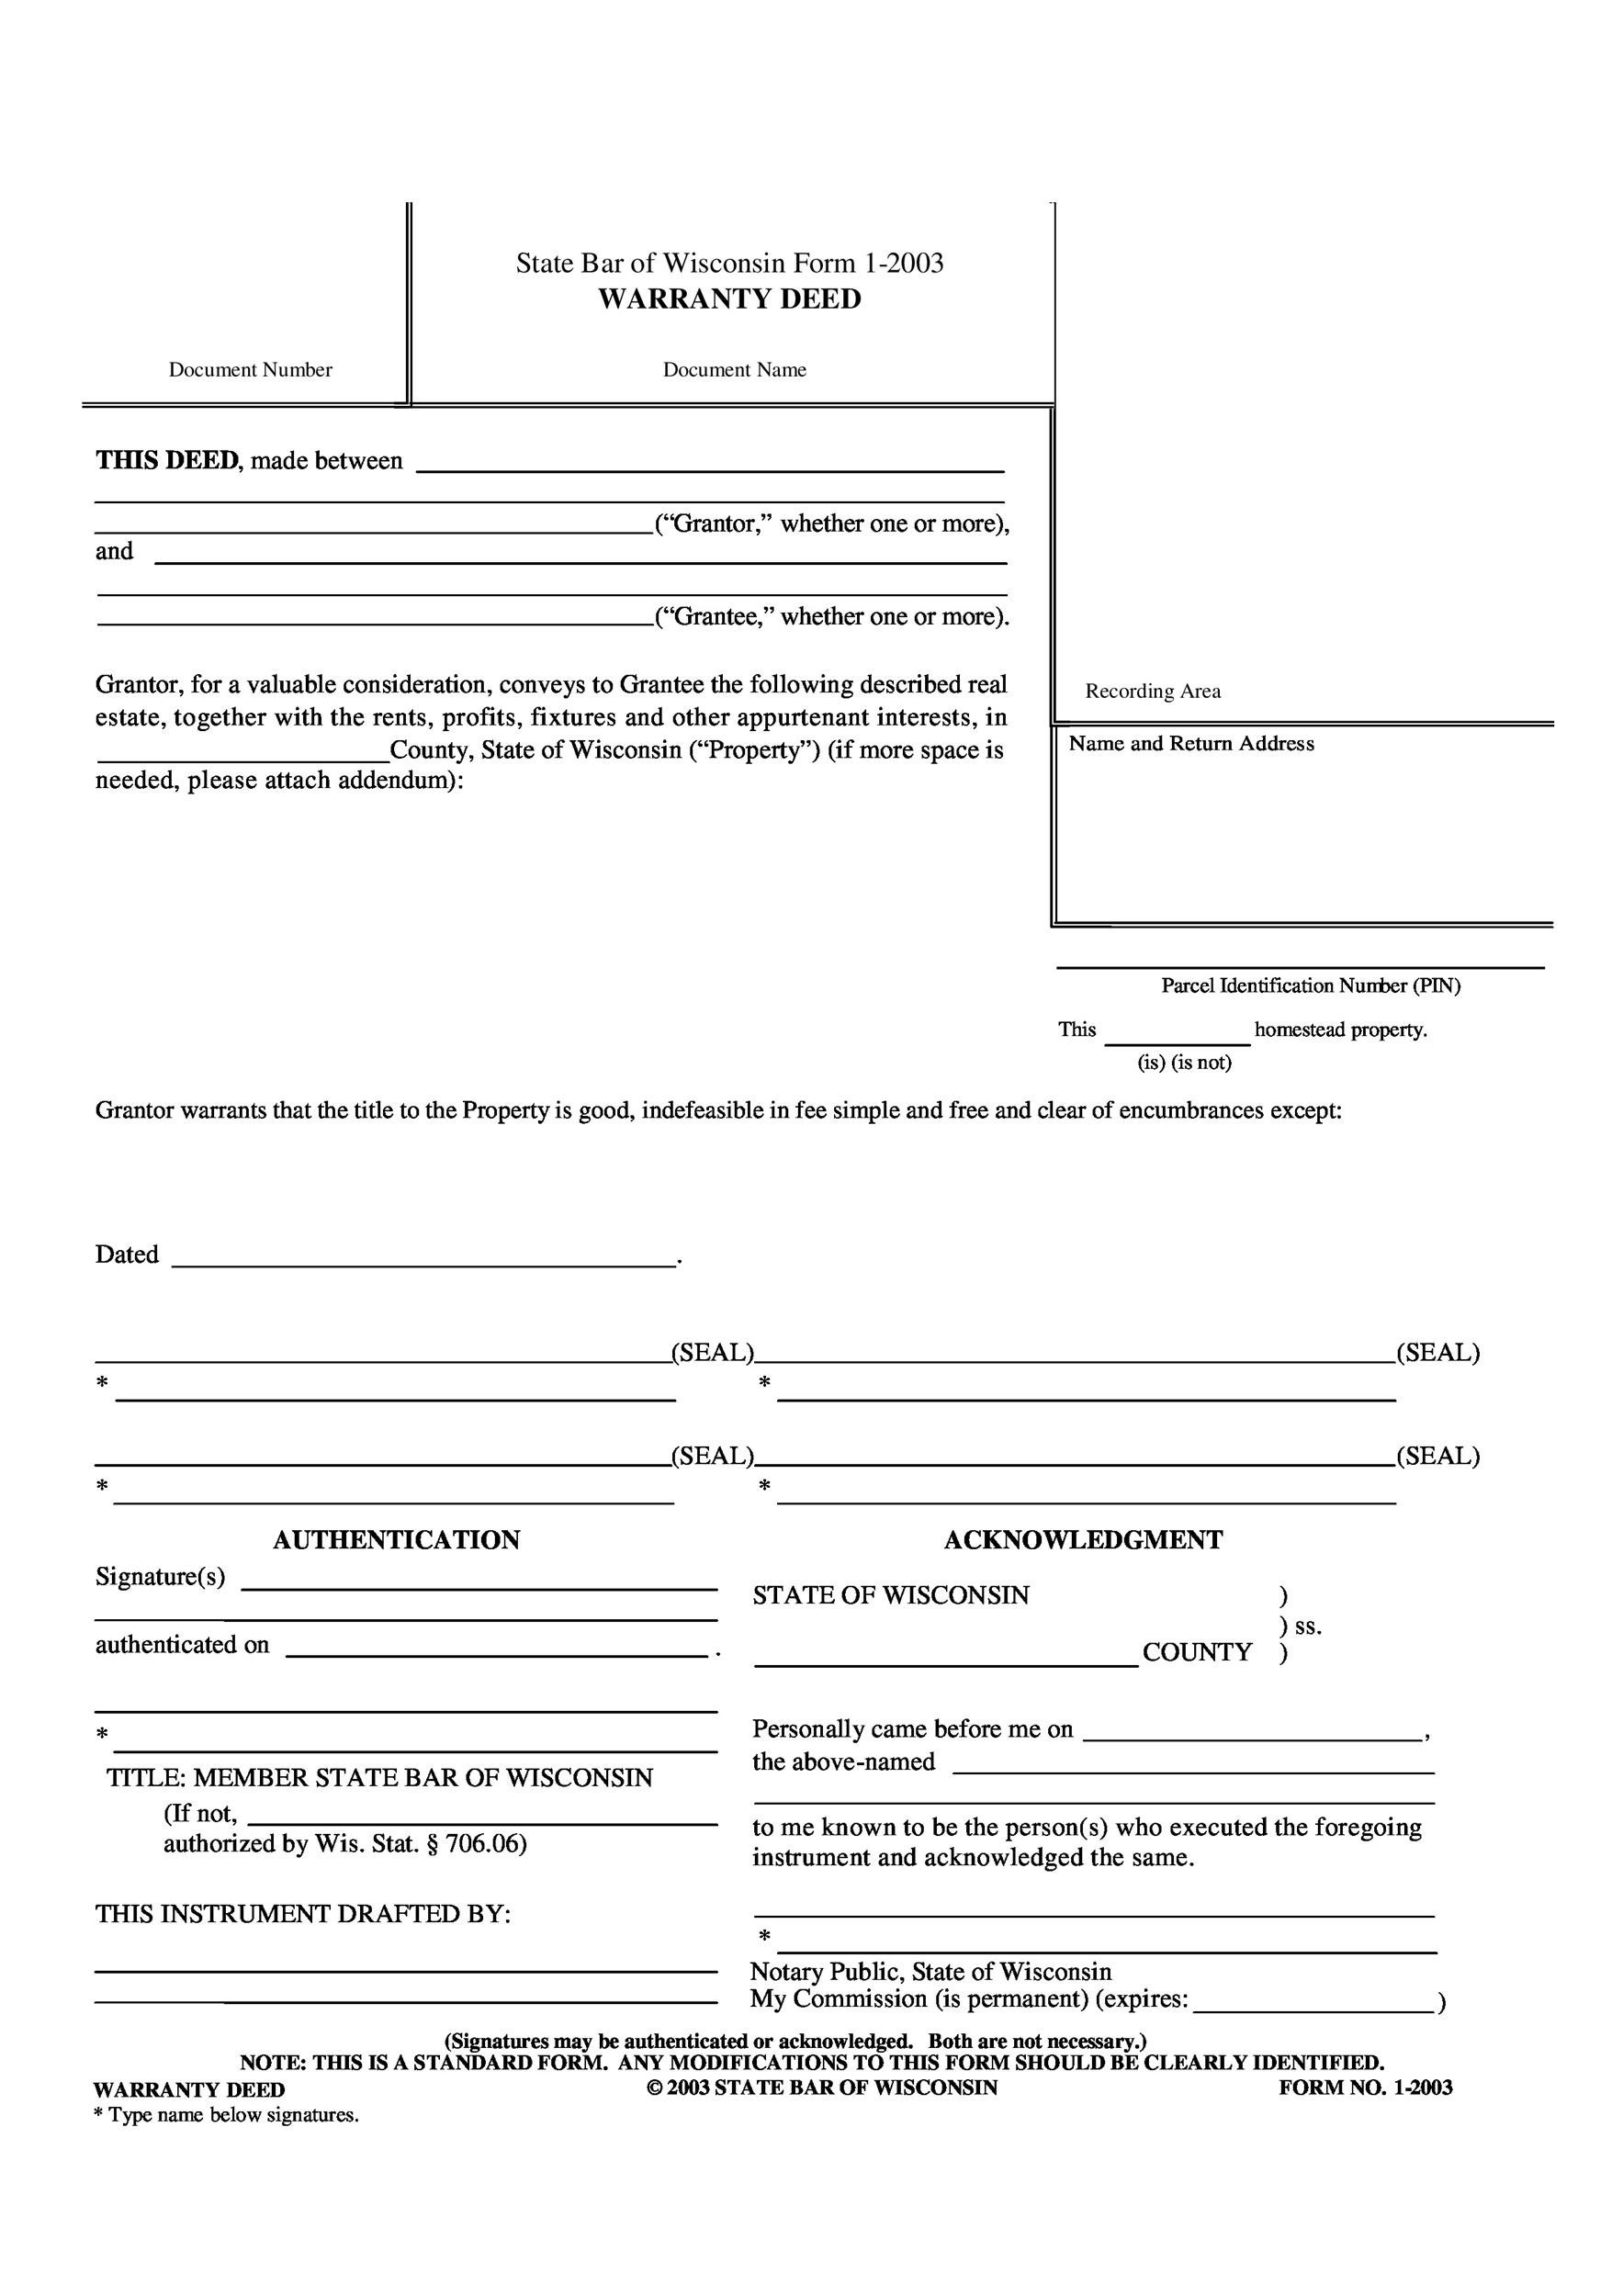 Free Warranty deed template 09